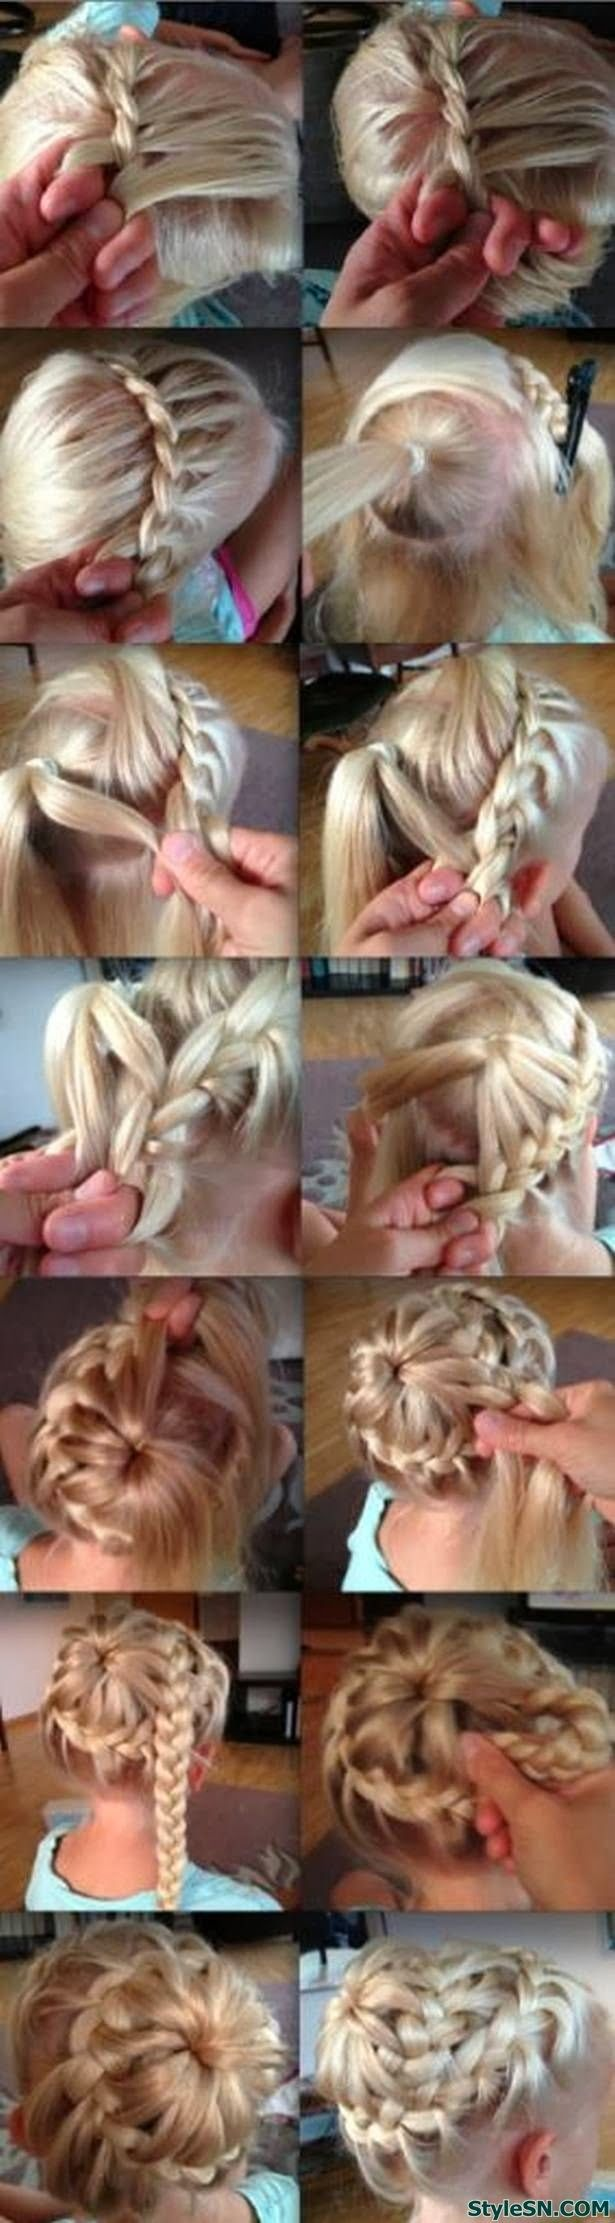 img81a4179b992e1179d911fbf40653c123 How to do braided hairstyles for long hair